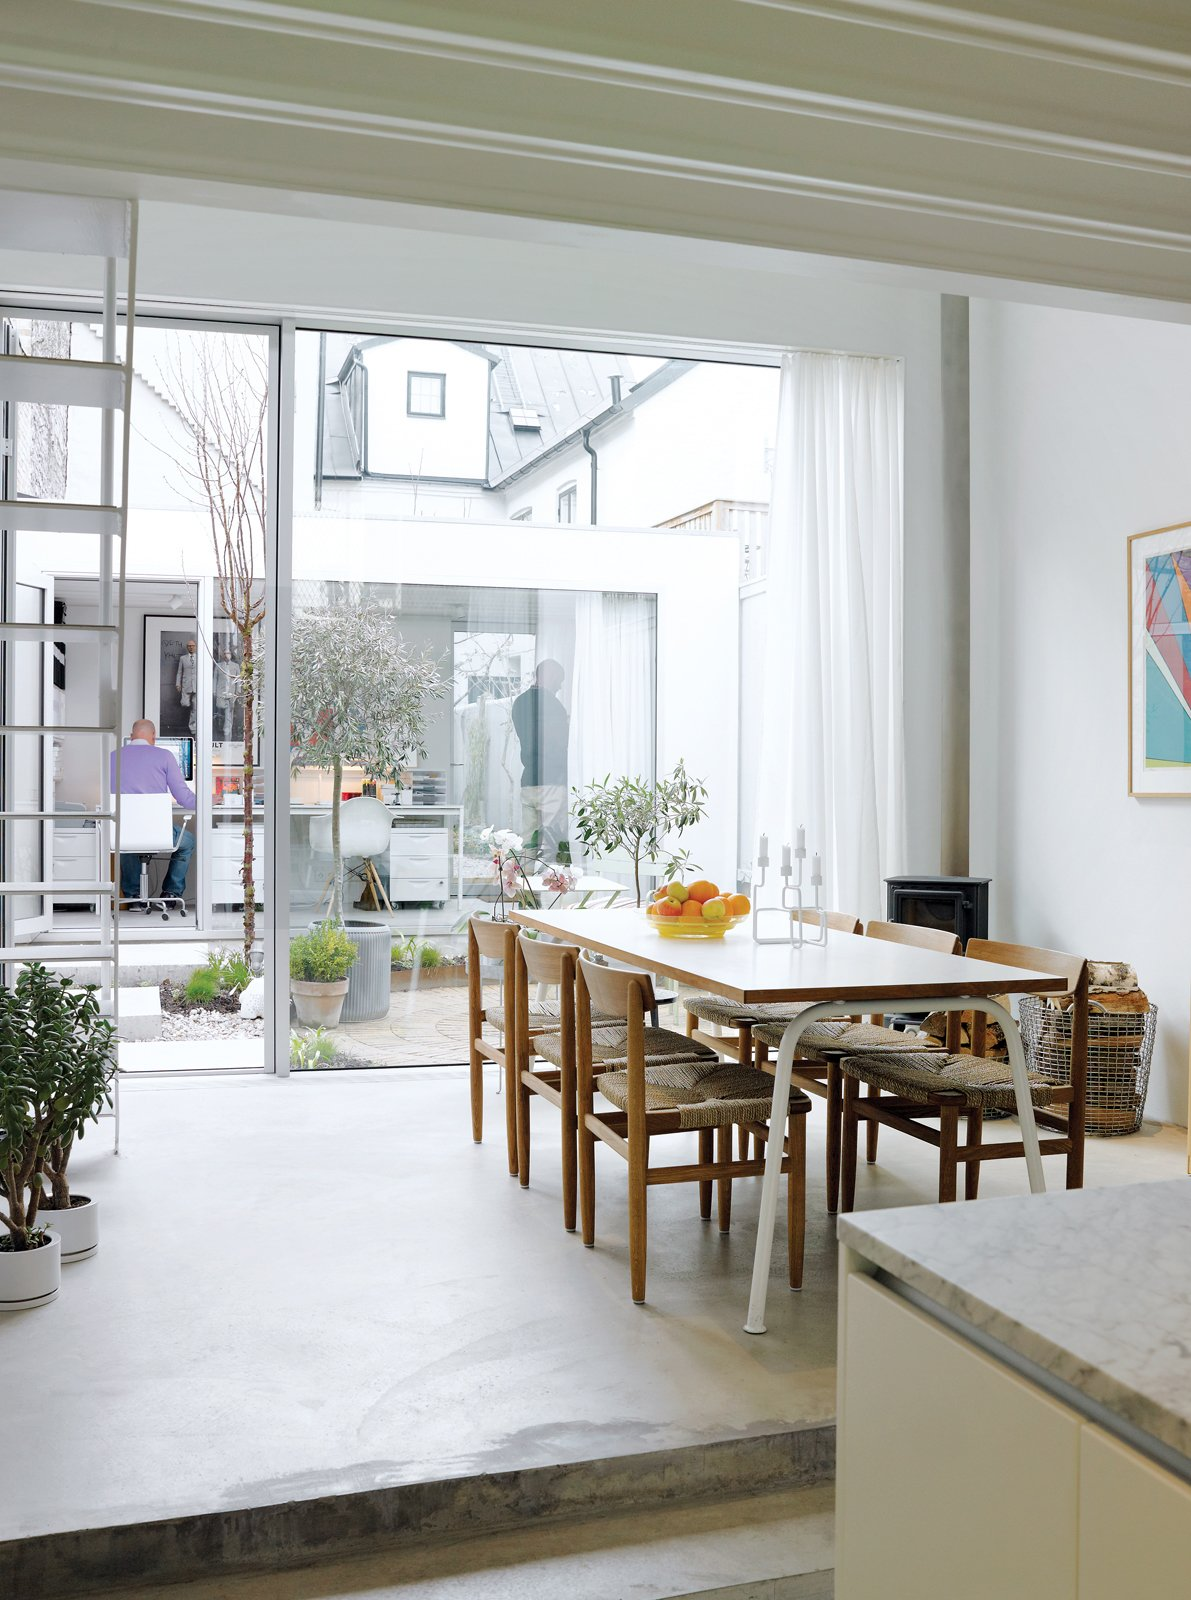 The view from the kitchen is as lively as it is light, taking in the dining area, tiny courtyard garden, and the separate office building backed by the jumble of old buildings to the rear. The rustic dining chairs are by Börge Mogensen from Karl Andersson & Söner. Contemporary Nordic Town House - Photo 7 of 14